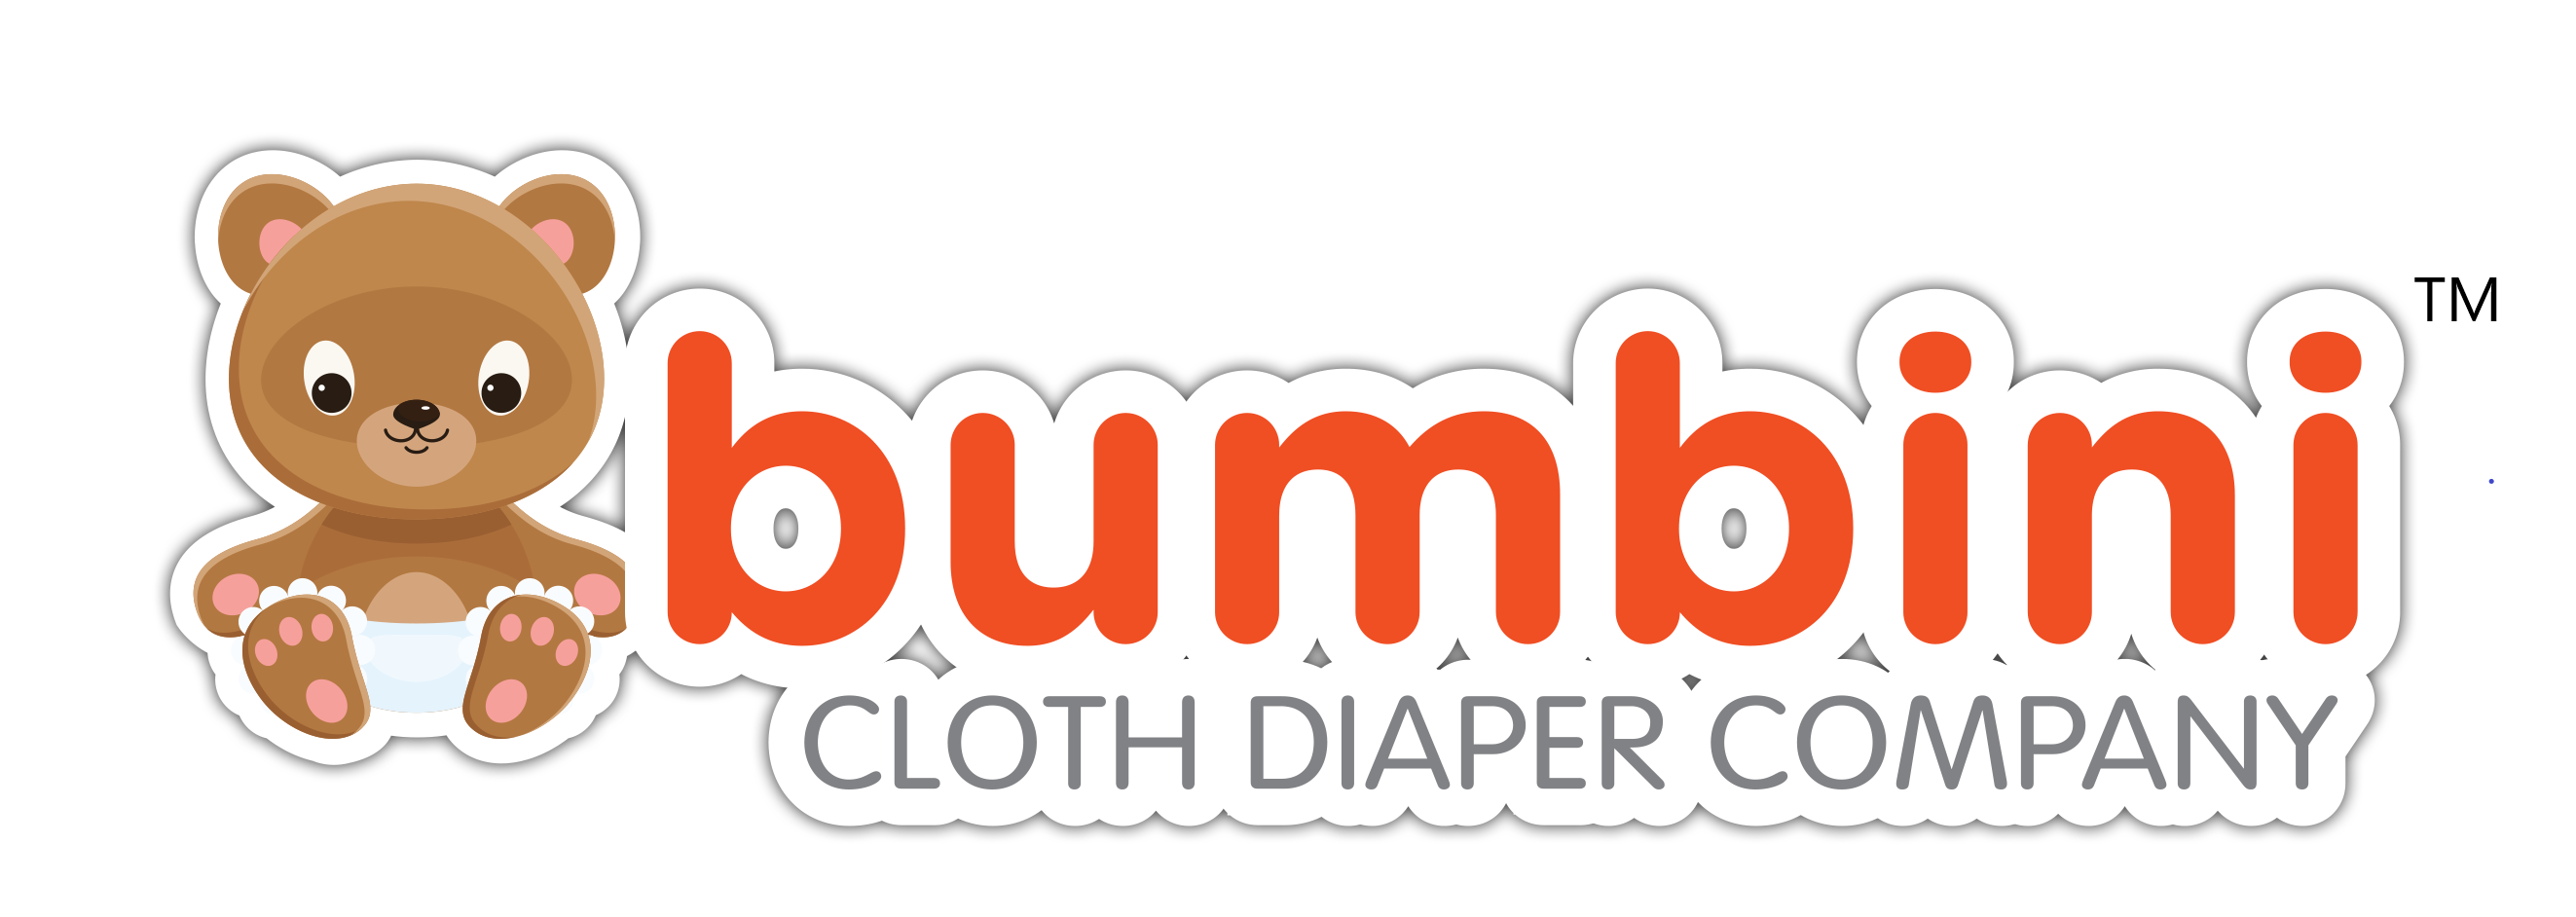 A wide variety of cloth diapers, diaper inserts, bamboo bowls and plates for baby. natural menstrual pads, natural nail polish, natural laundry soap, Birth pool rentals. Diaper rental trial kits. Workshops and so much more.